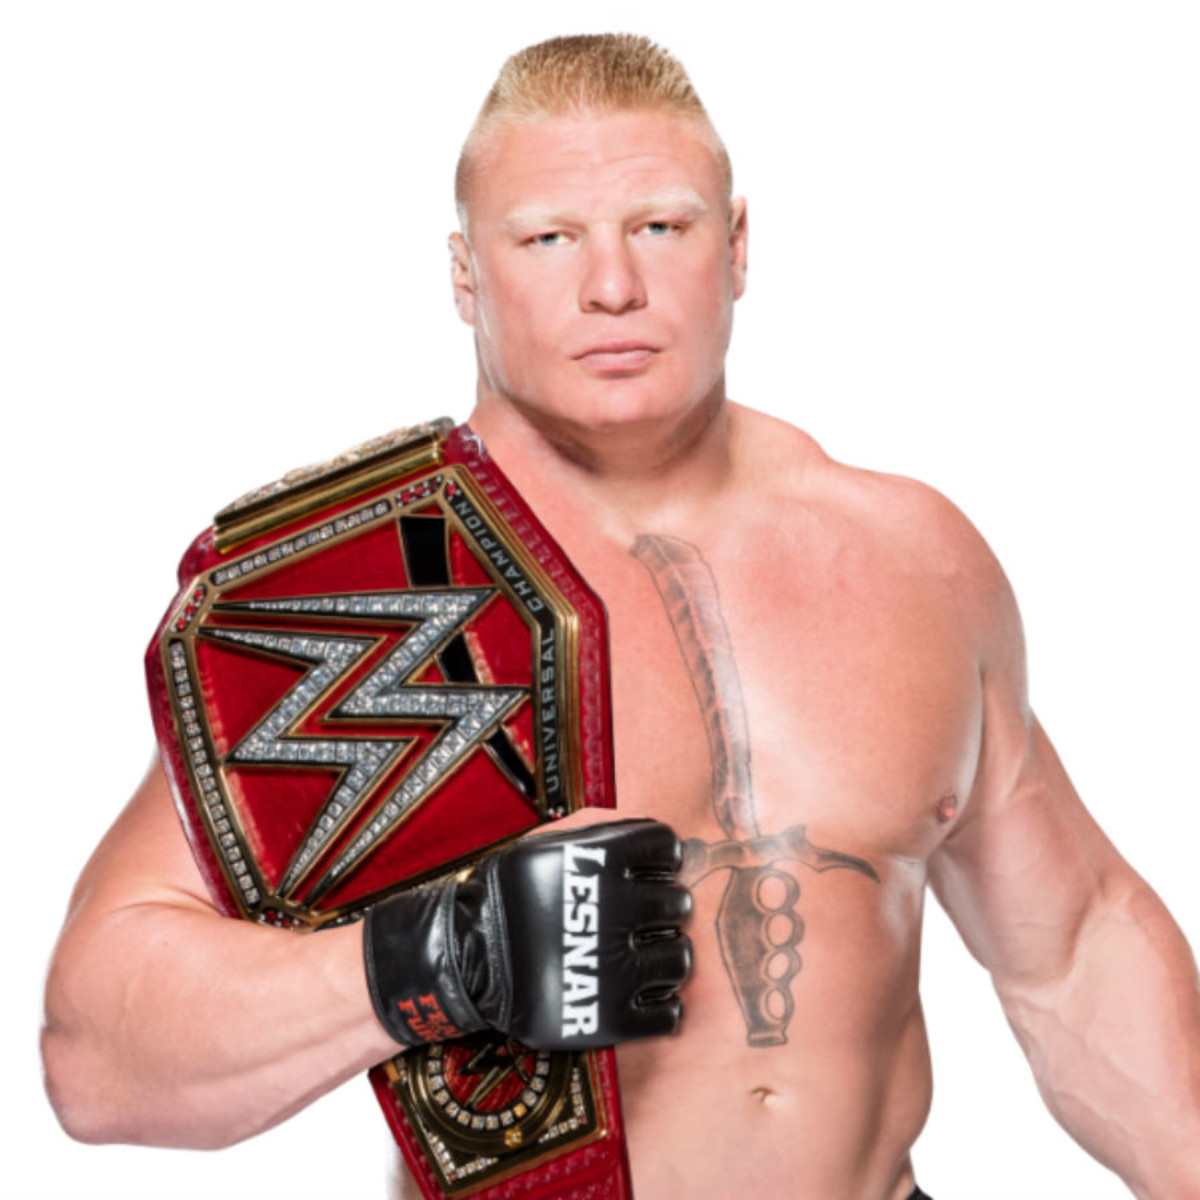 WWE wrestler Brock Lesnar